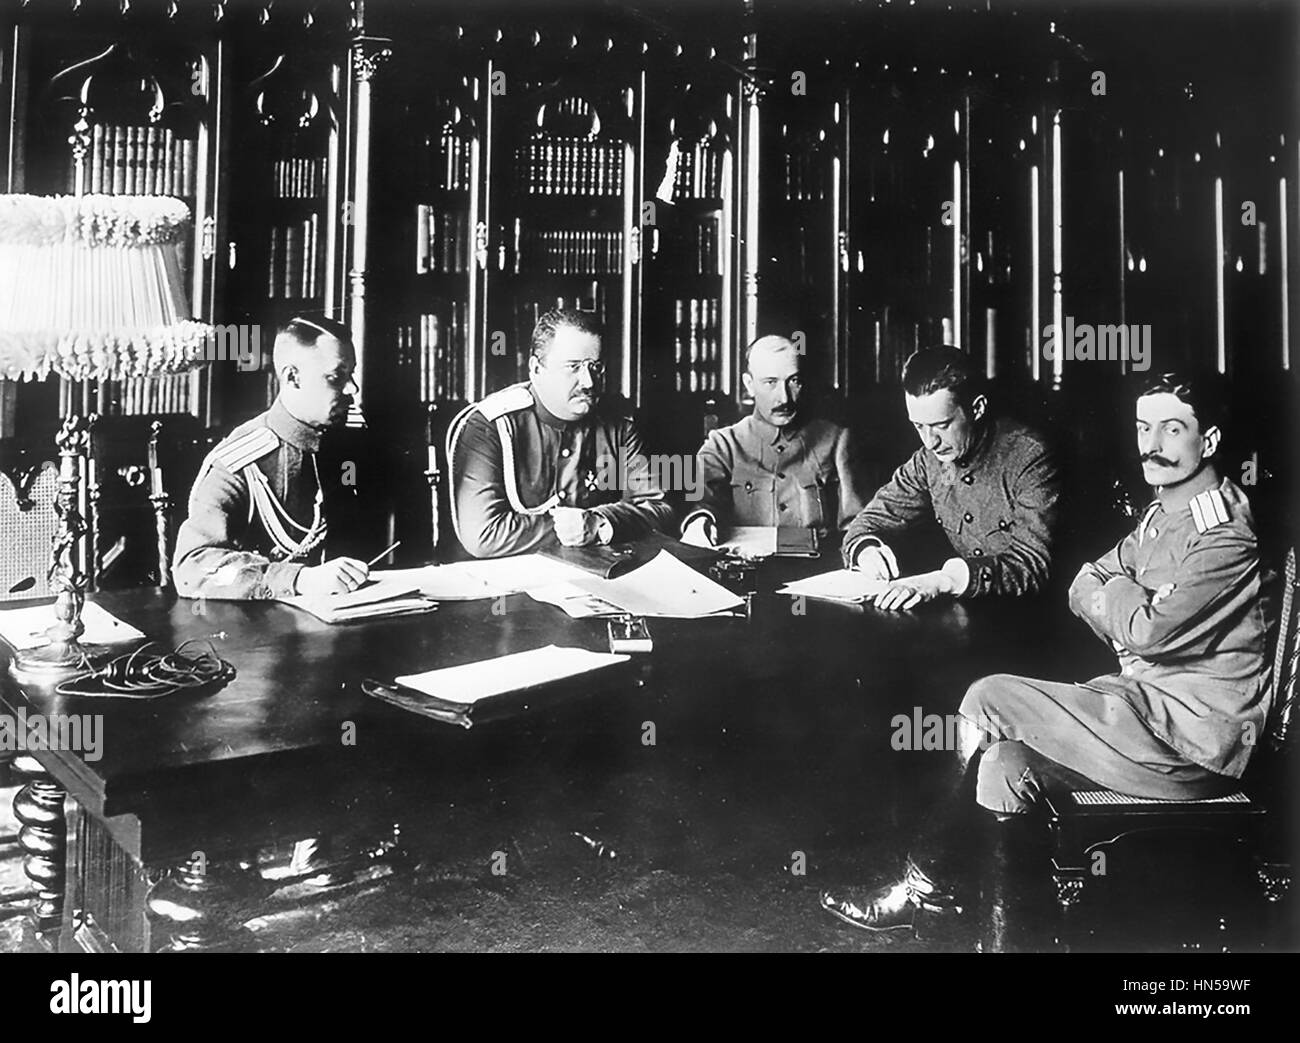 ALEXANDER KERENSKY (1881-1970) second from right as Russian Minister of War in 1917. Photo: Karl Bulla - Stock Image